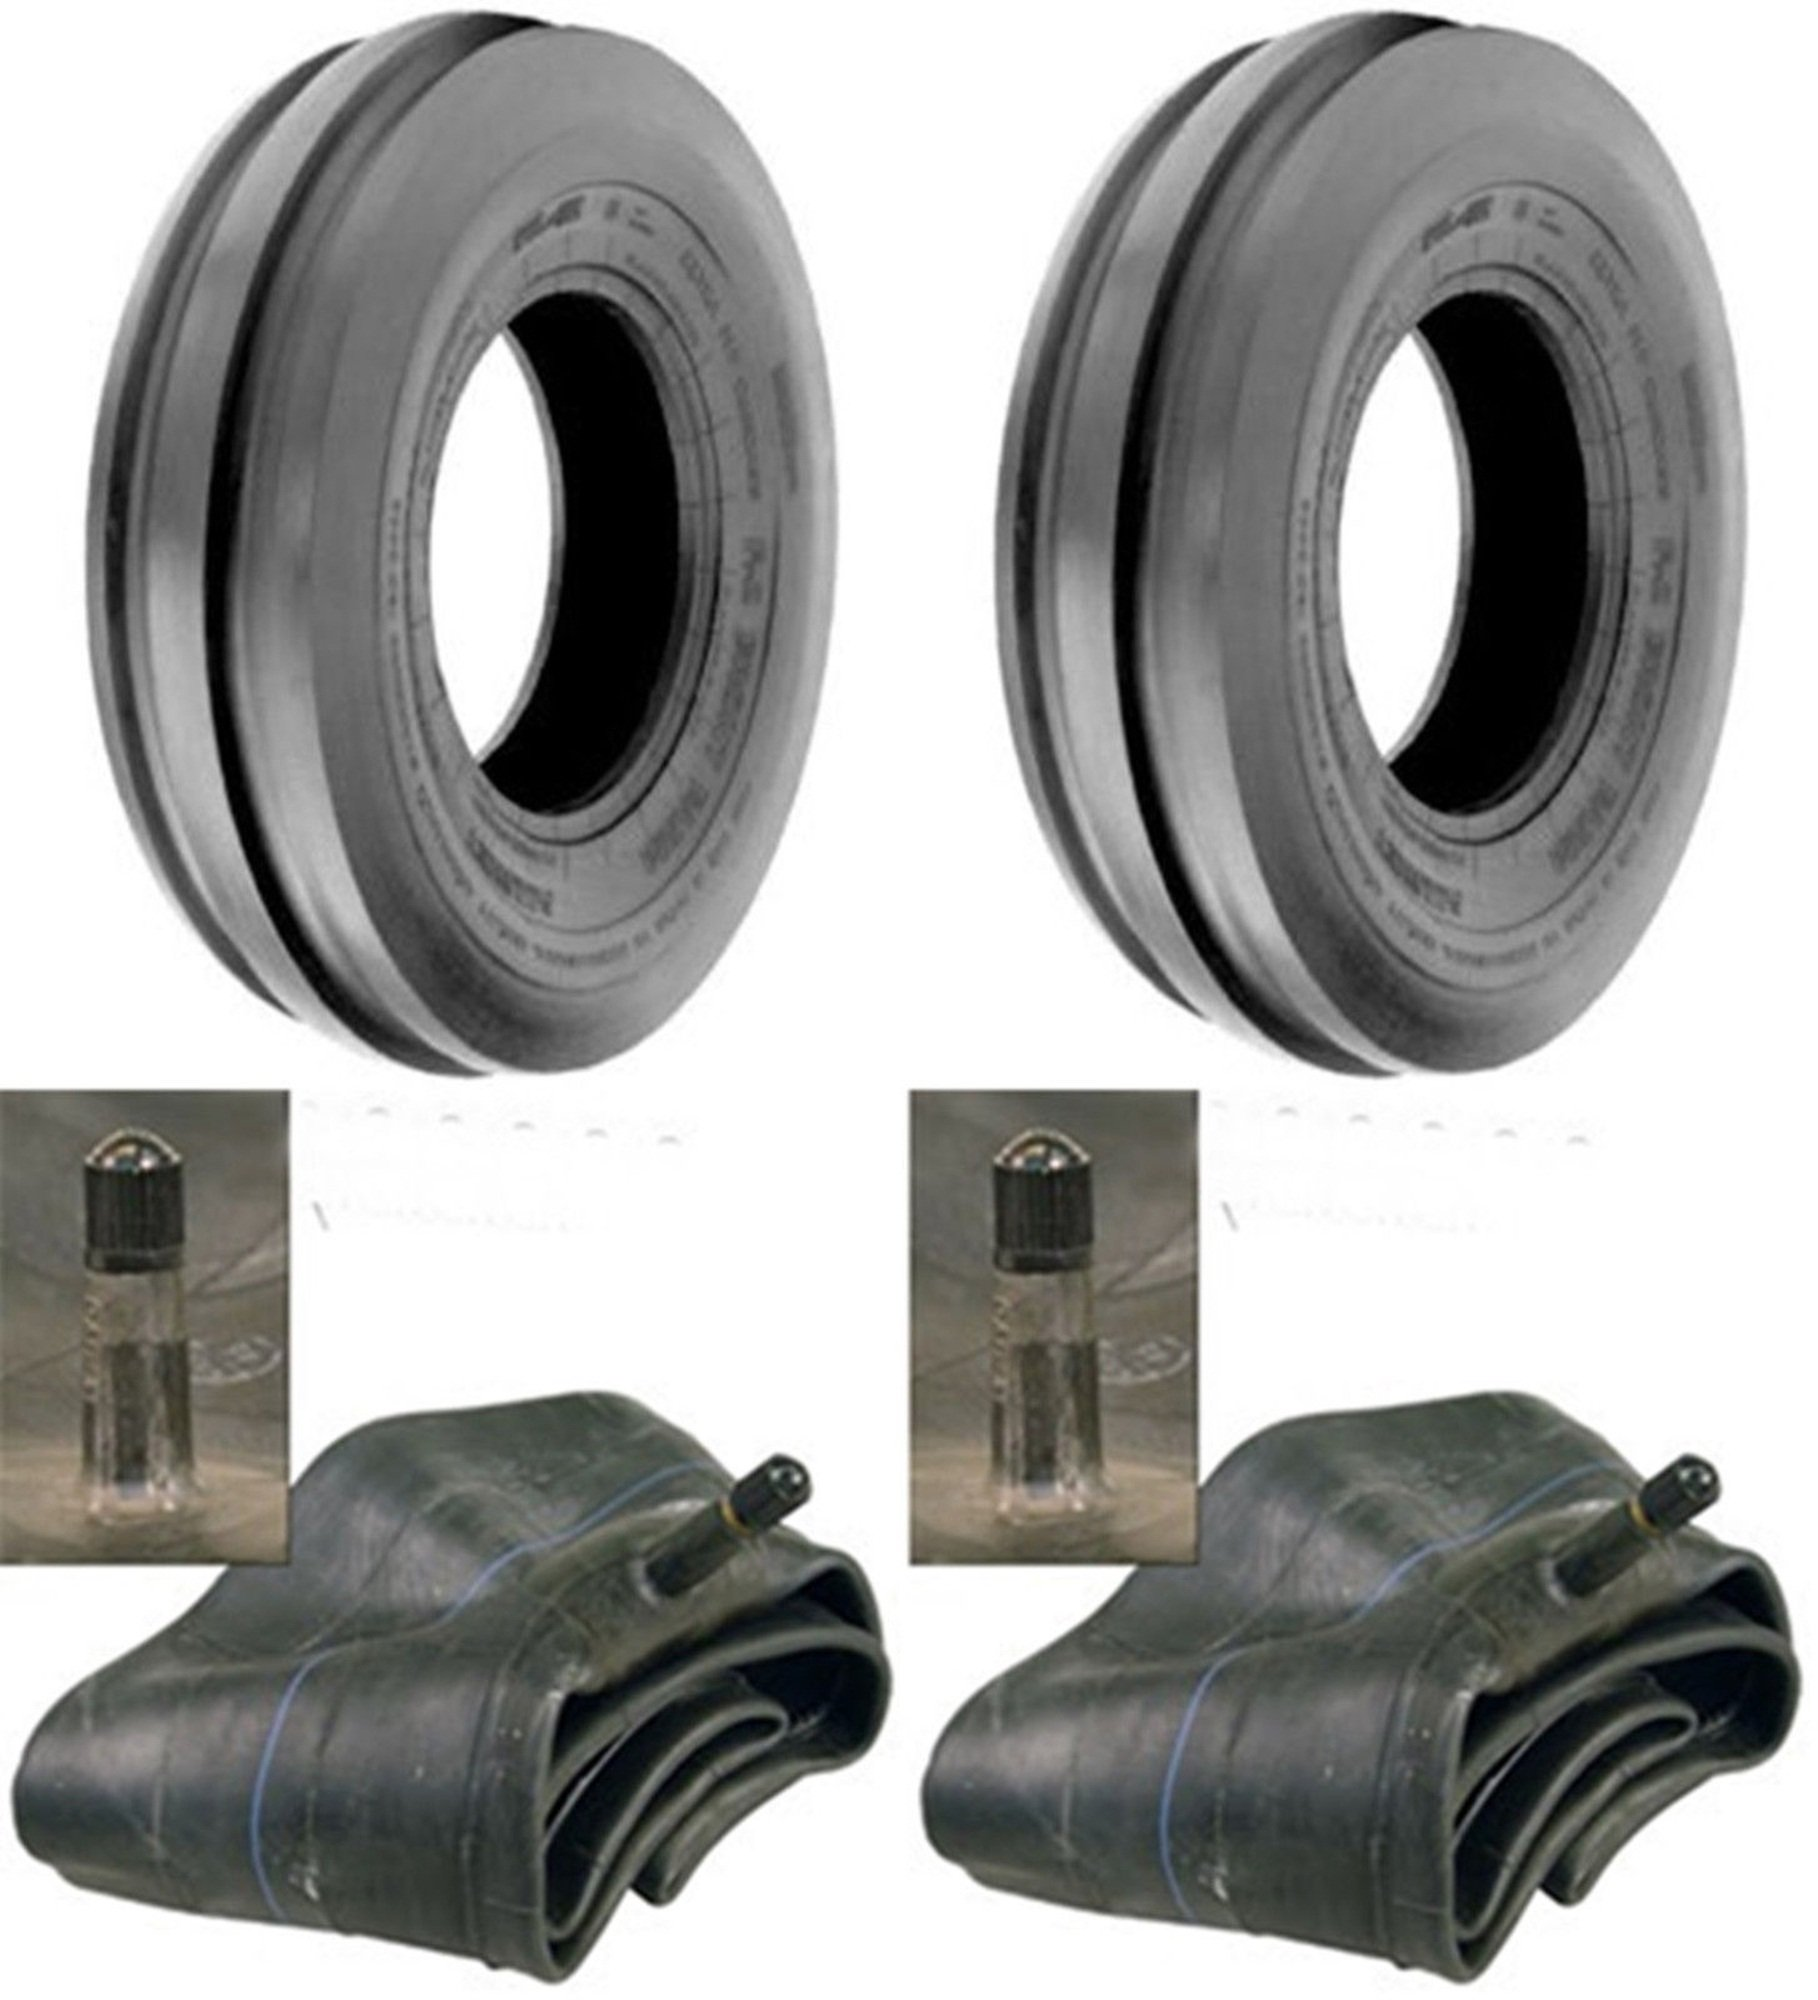 LOT OF TWO (2) 6.00-16 6.00X16 600-16 Tri Rib (3 Rib) F-2 Tires with Tubes 6 PLY RATED by SCMAX (Image #1)